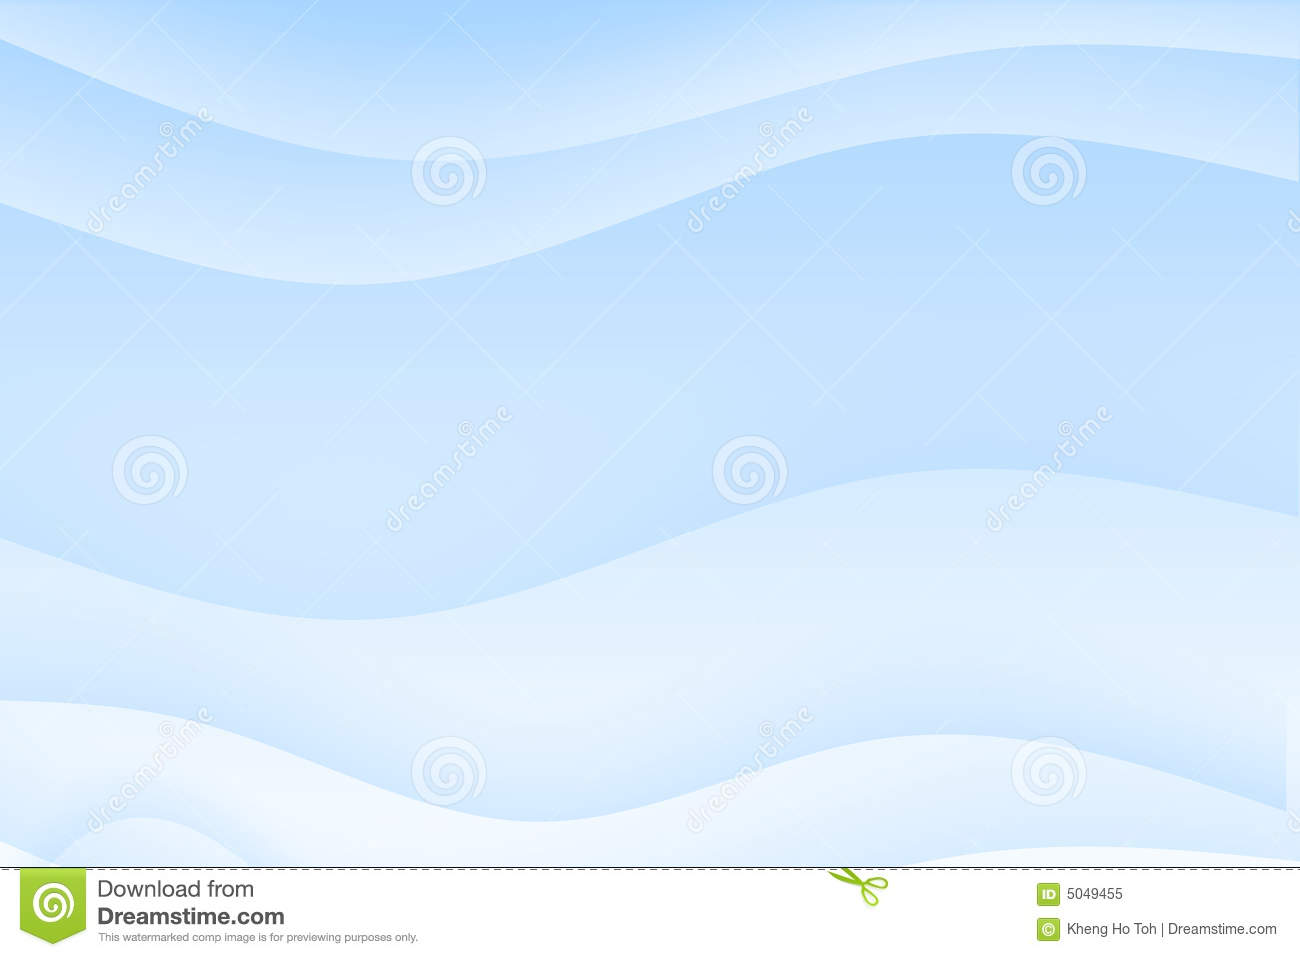 Abstract light blue wavy soothing background